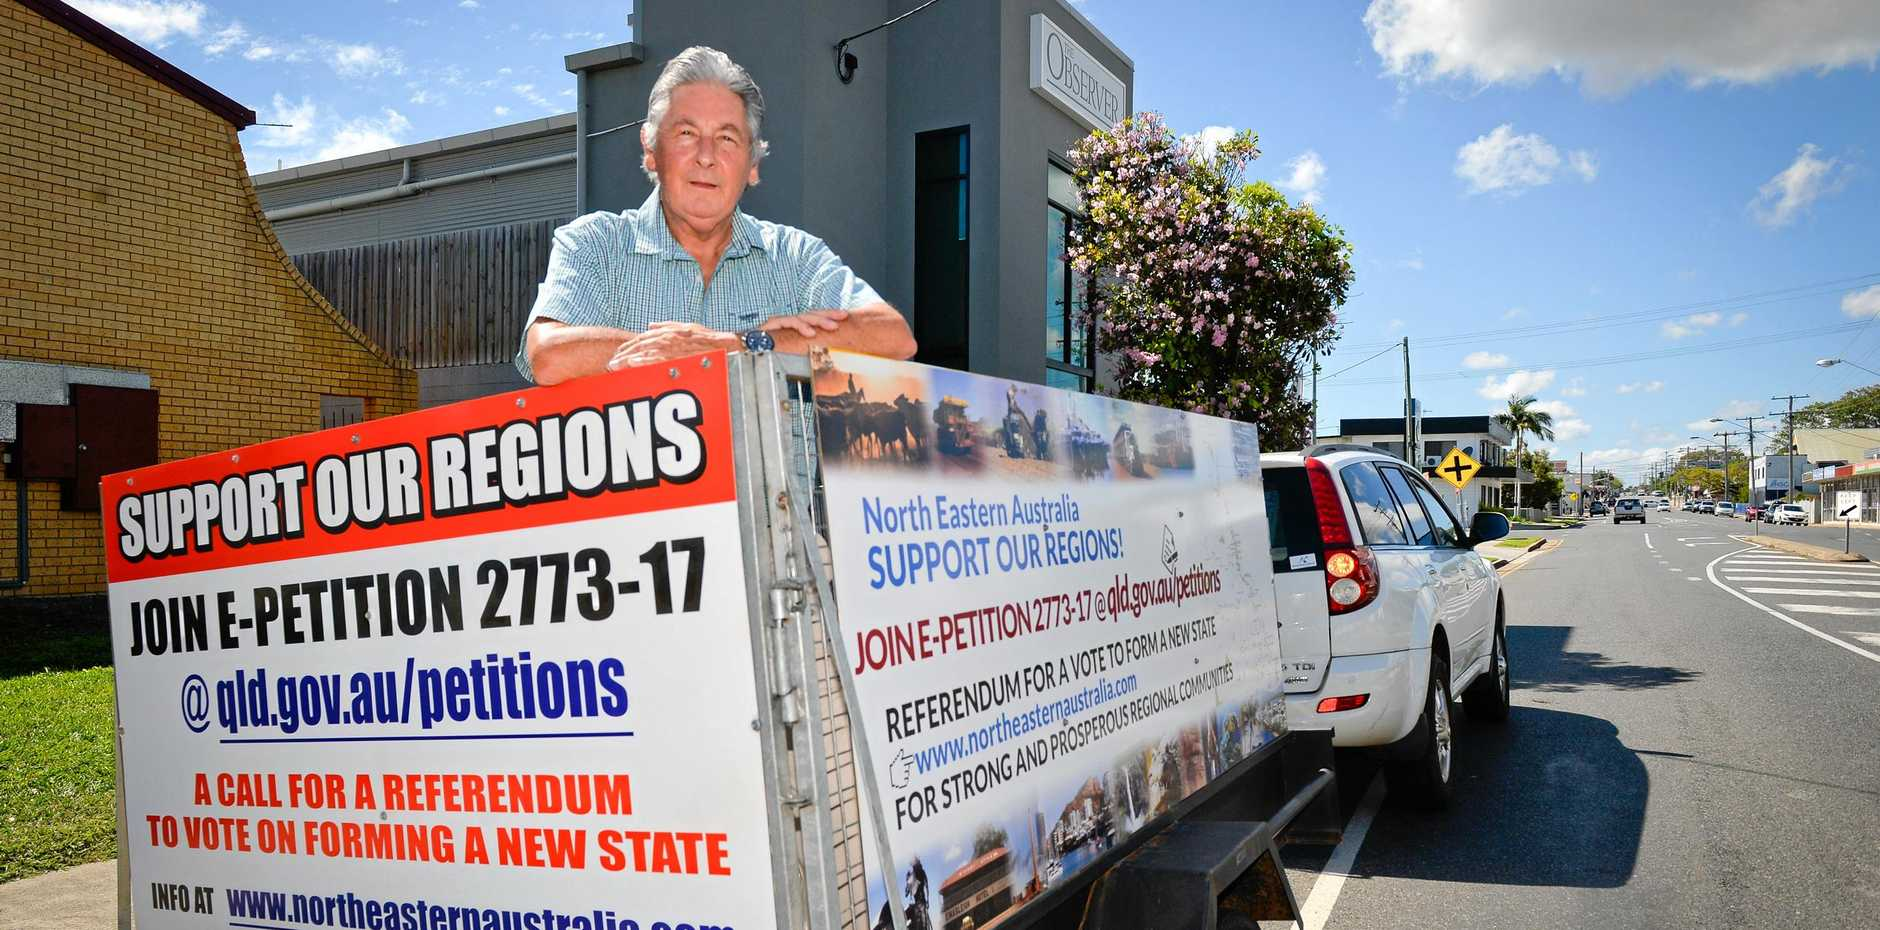 STATE QUESTION: Bill Bates has taken his message on the road to help drum up interest and support for his petition to hold a referendum on forming a new state.